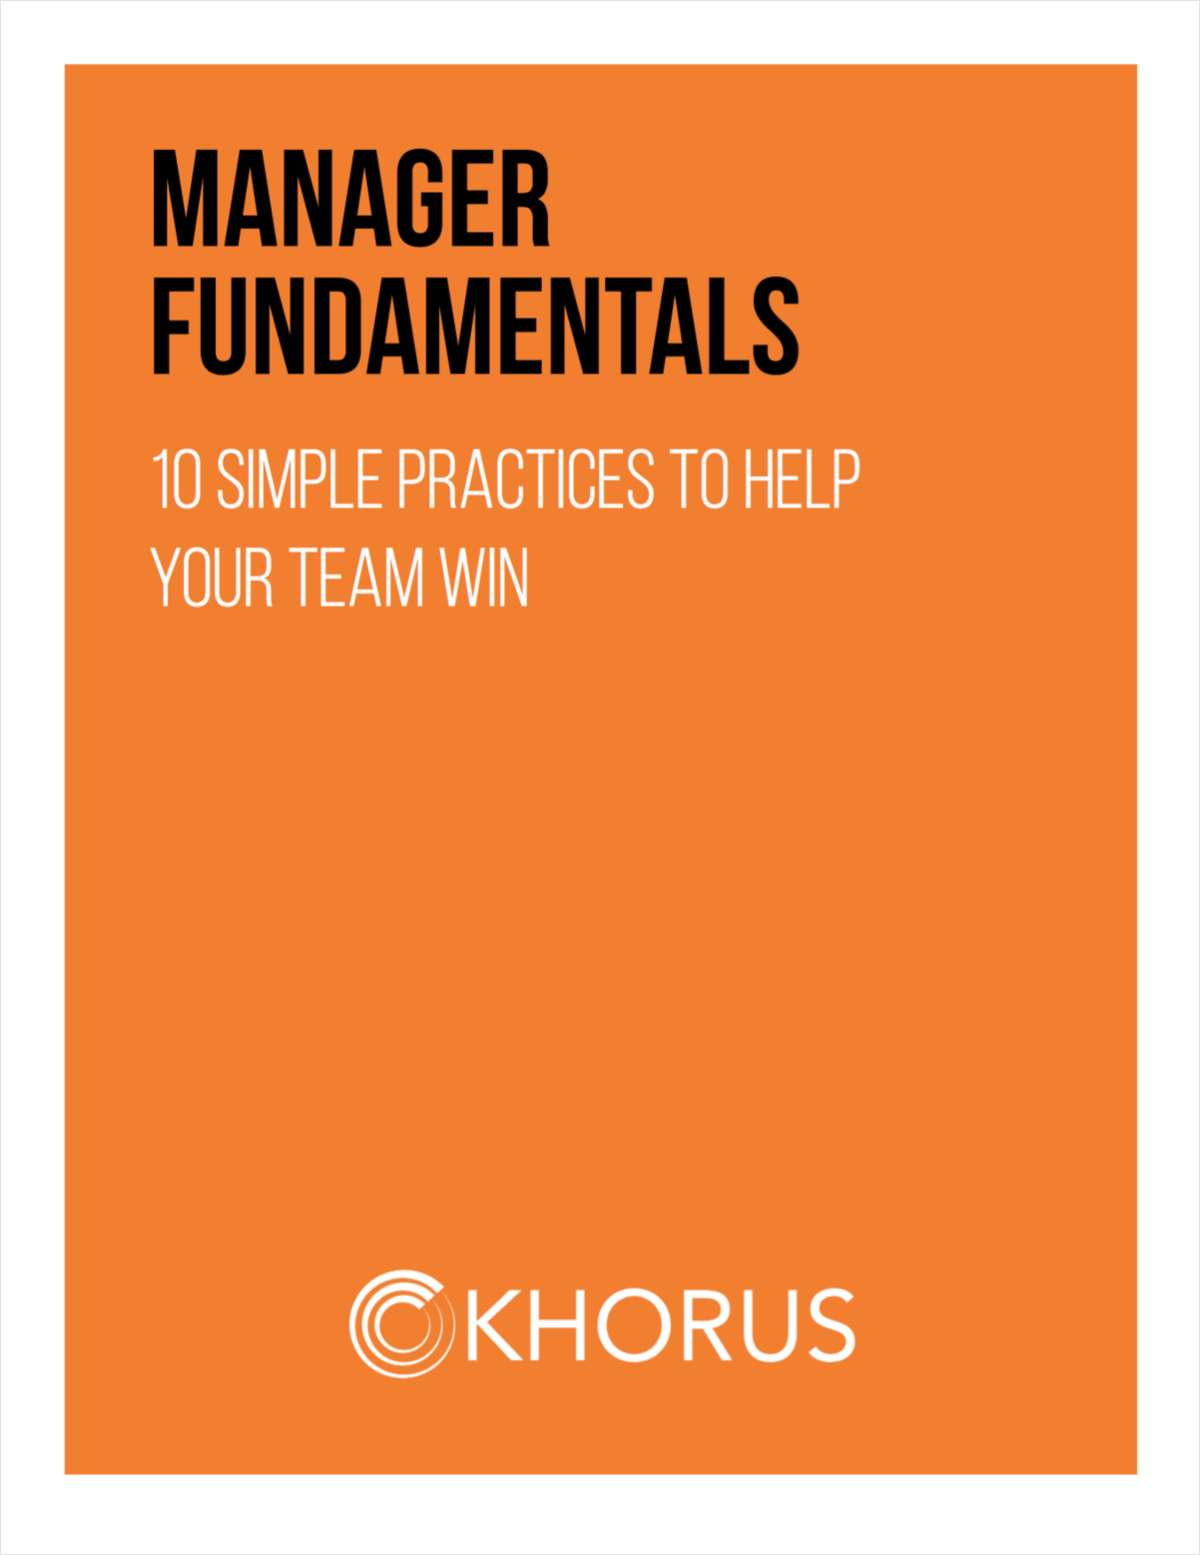 10 Simple Practices to Help Your Team Win